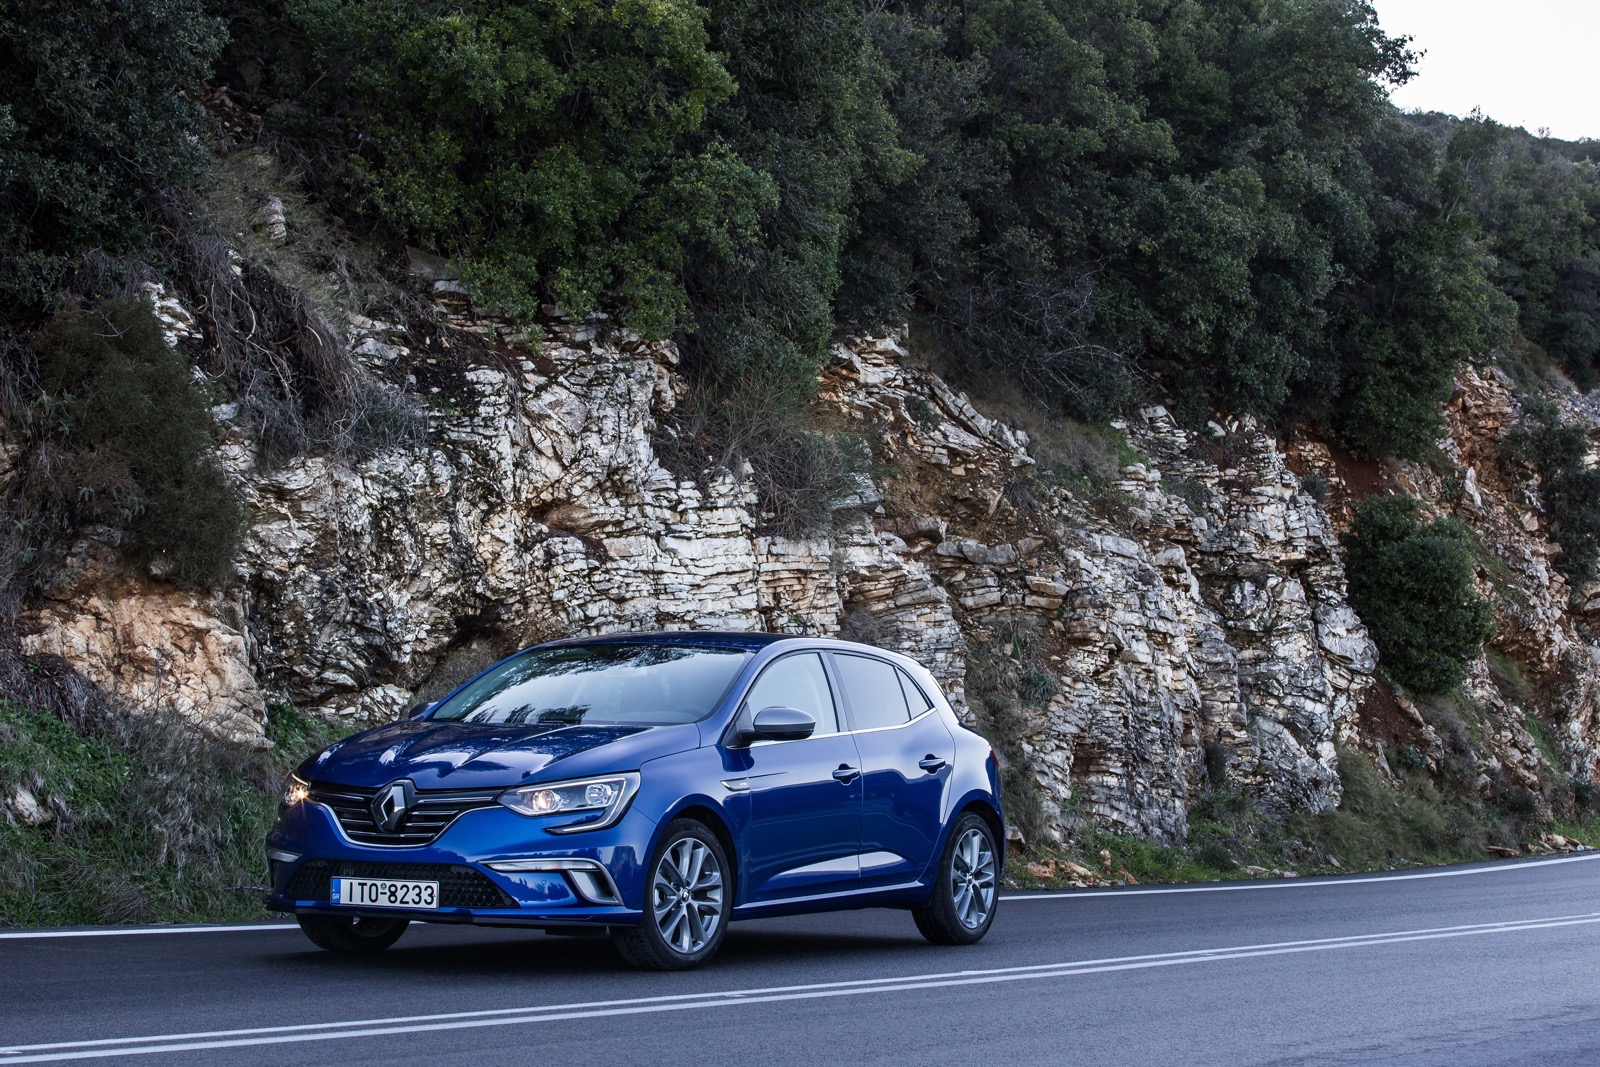 First_Drive_Renault_Megane_22